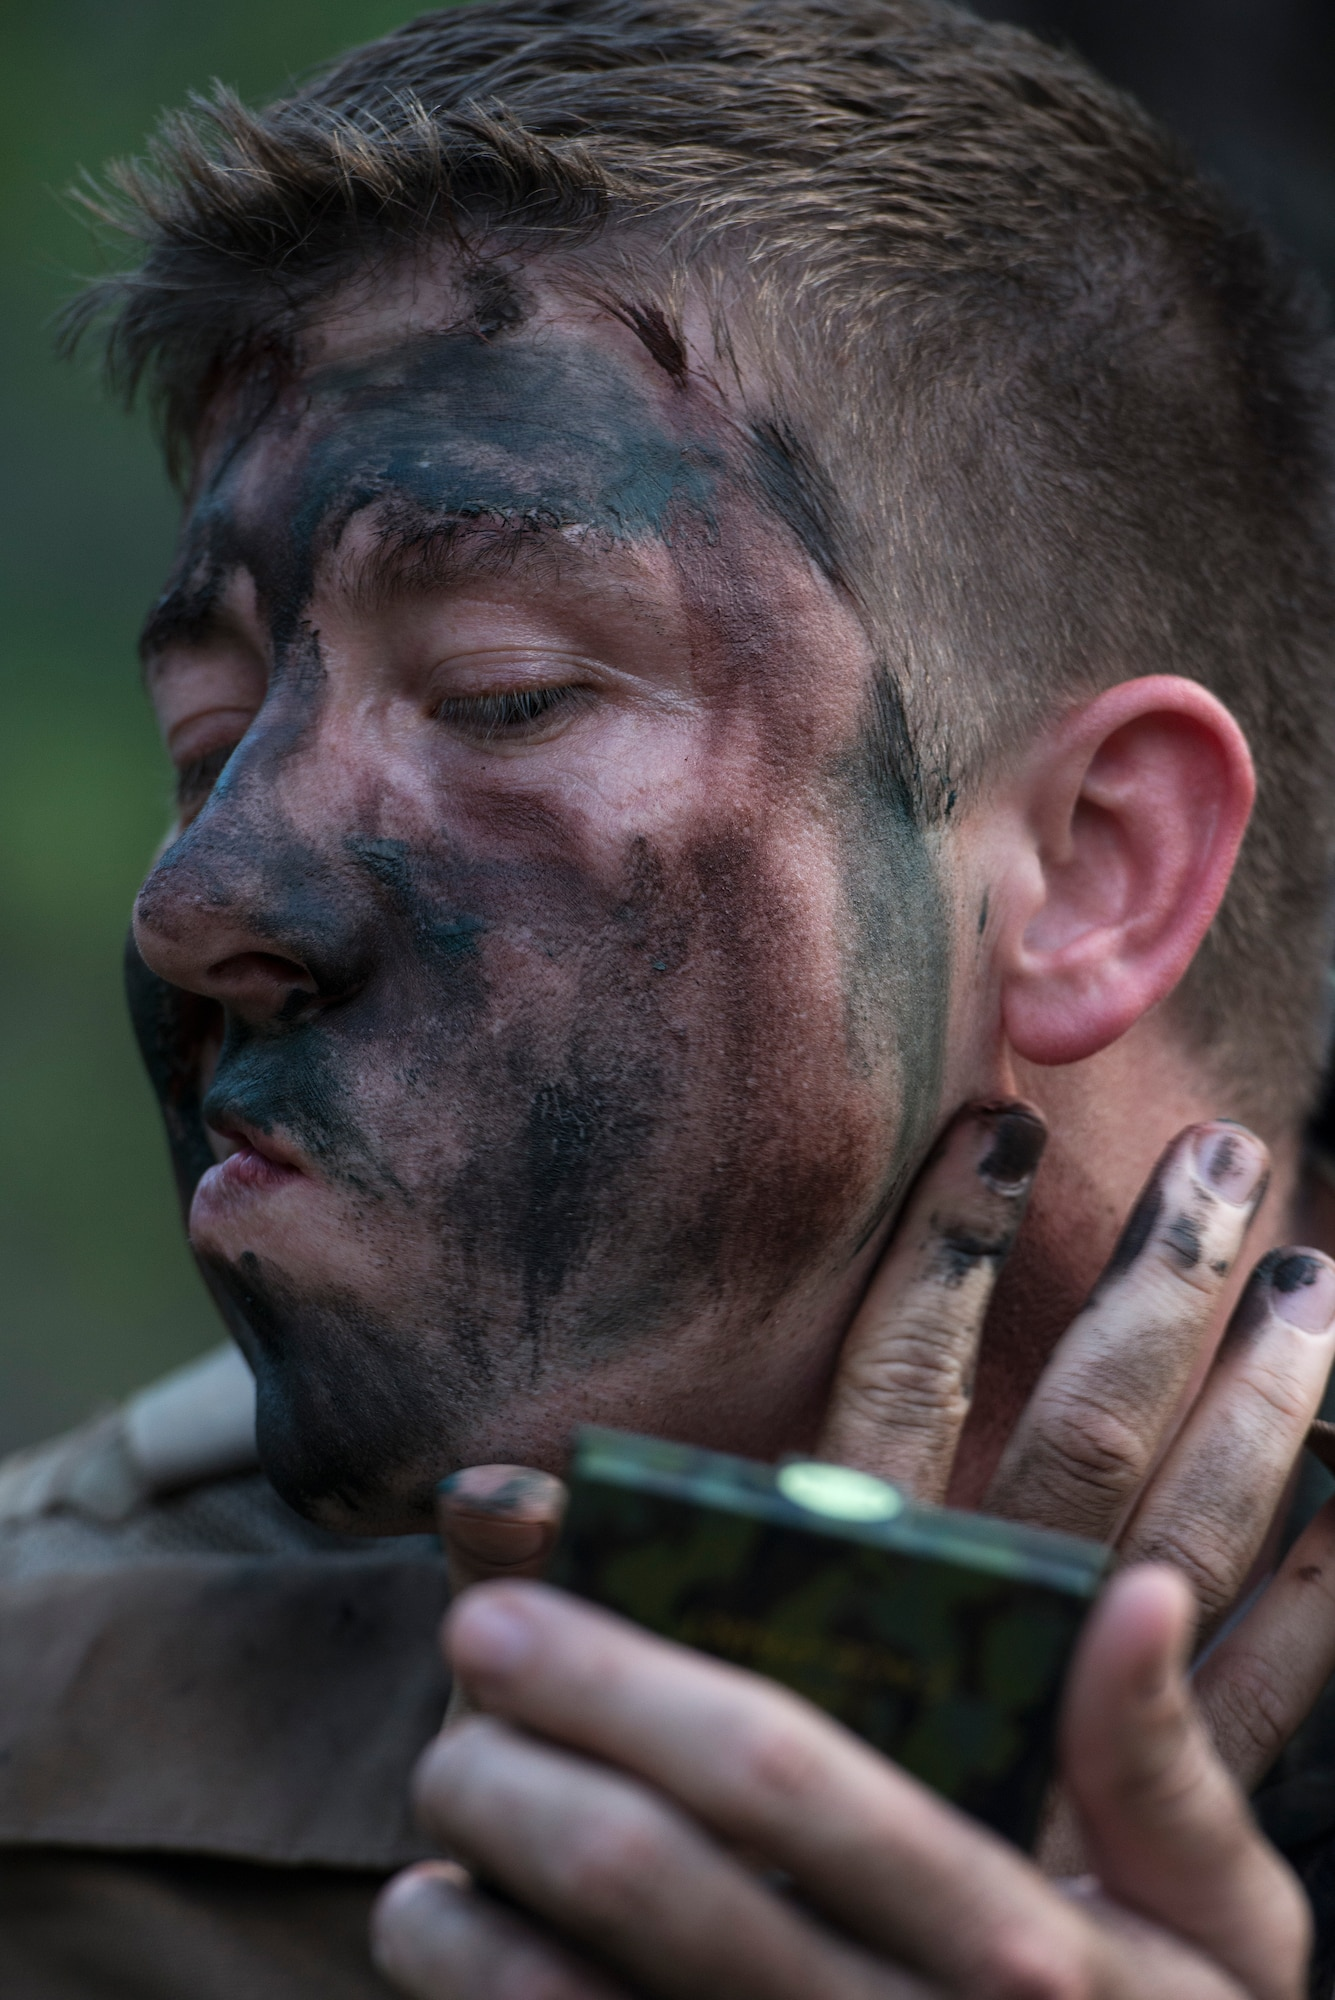 Maj. Rob Gatti applies paint to his face in preparation for a combat survival refresher course Oct. 9, 2014, at Joint Base Pearl Harbor-Hickam, Hawaii. The survival, evasion, resistance and escape combat survival refresher course is designed to familiarize aircrew members with combat skills learned through hands-on training in a realistic environment. Gatti is from the 65th Airlift Squadron. (U.S. Air Force photo/Staff Sgt. Christopher Hubenthal)